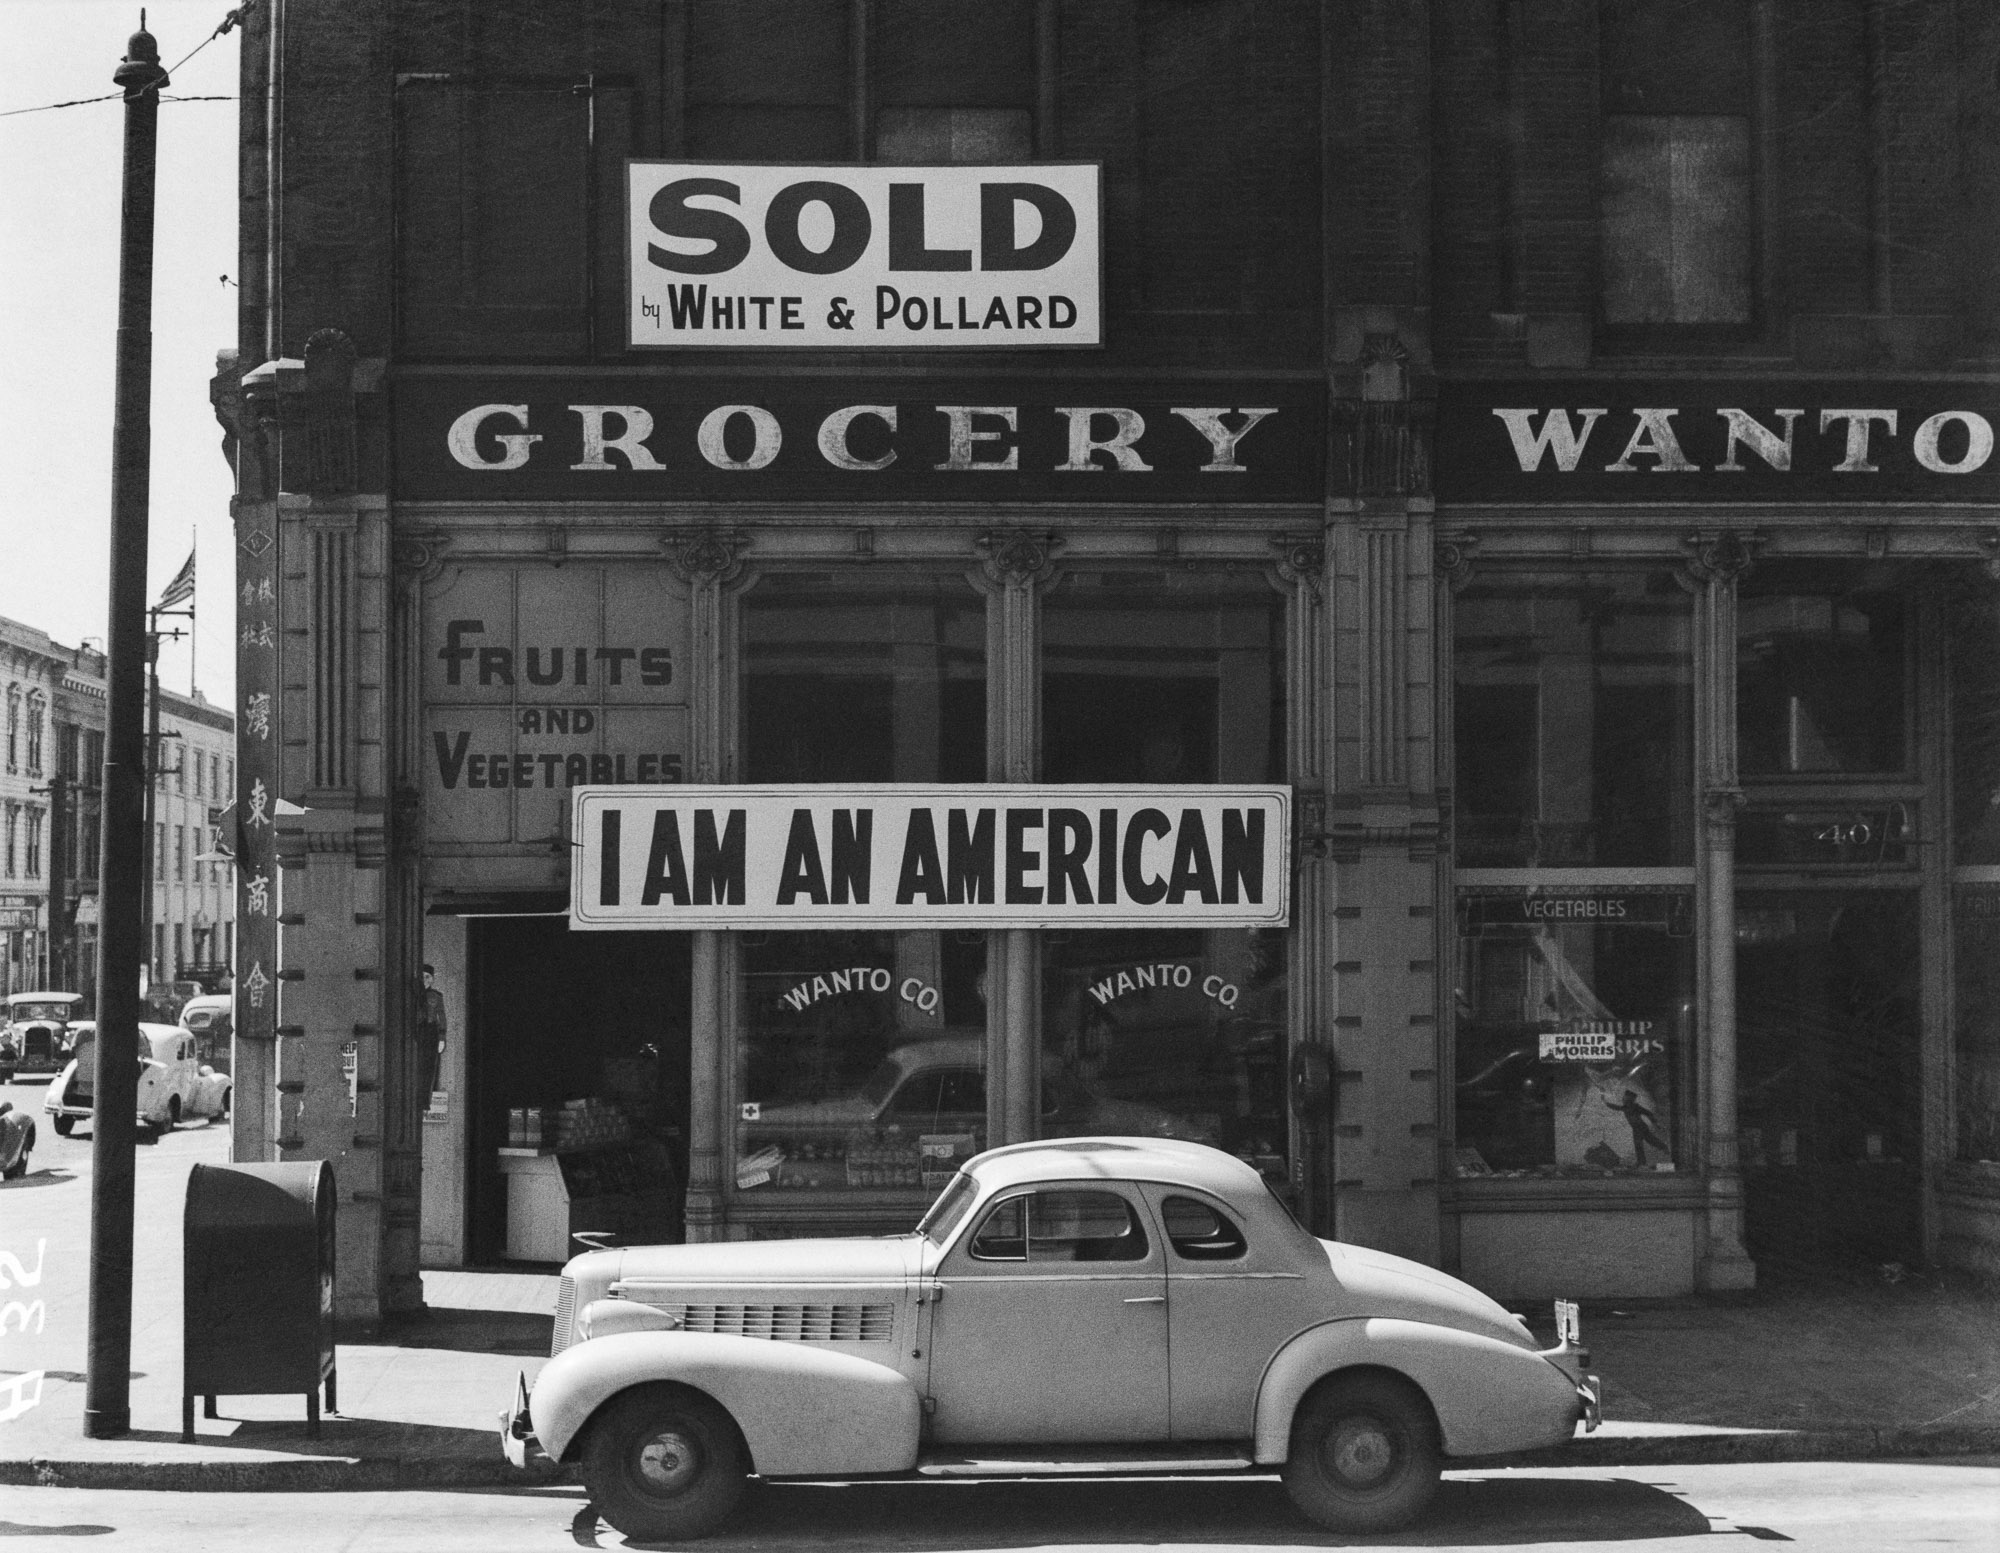 """PRINT AVAILABLE   Oakland, Calif., Mar. 1942. A large sign reading """"I am an American"""" placed in the window of a store, at 13th and Franklin streets, on December 8, the day after Pearl Harbor. The store was closed following orders to persons of Japanese descent to evacuate from certain West Coast areas. The owner, a University of California graduate, will be housed with hundreds of evacuees in War Relocation Authority centers for the duration of the war"""